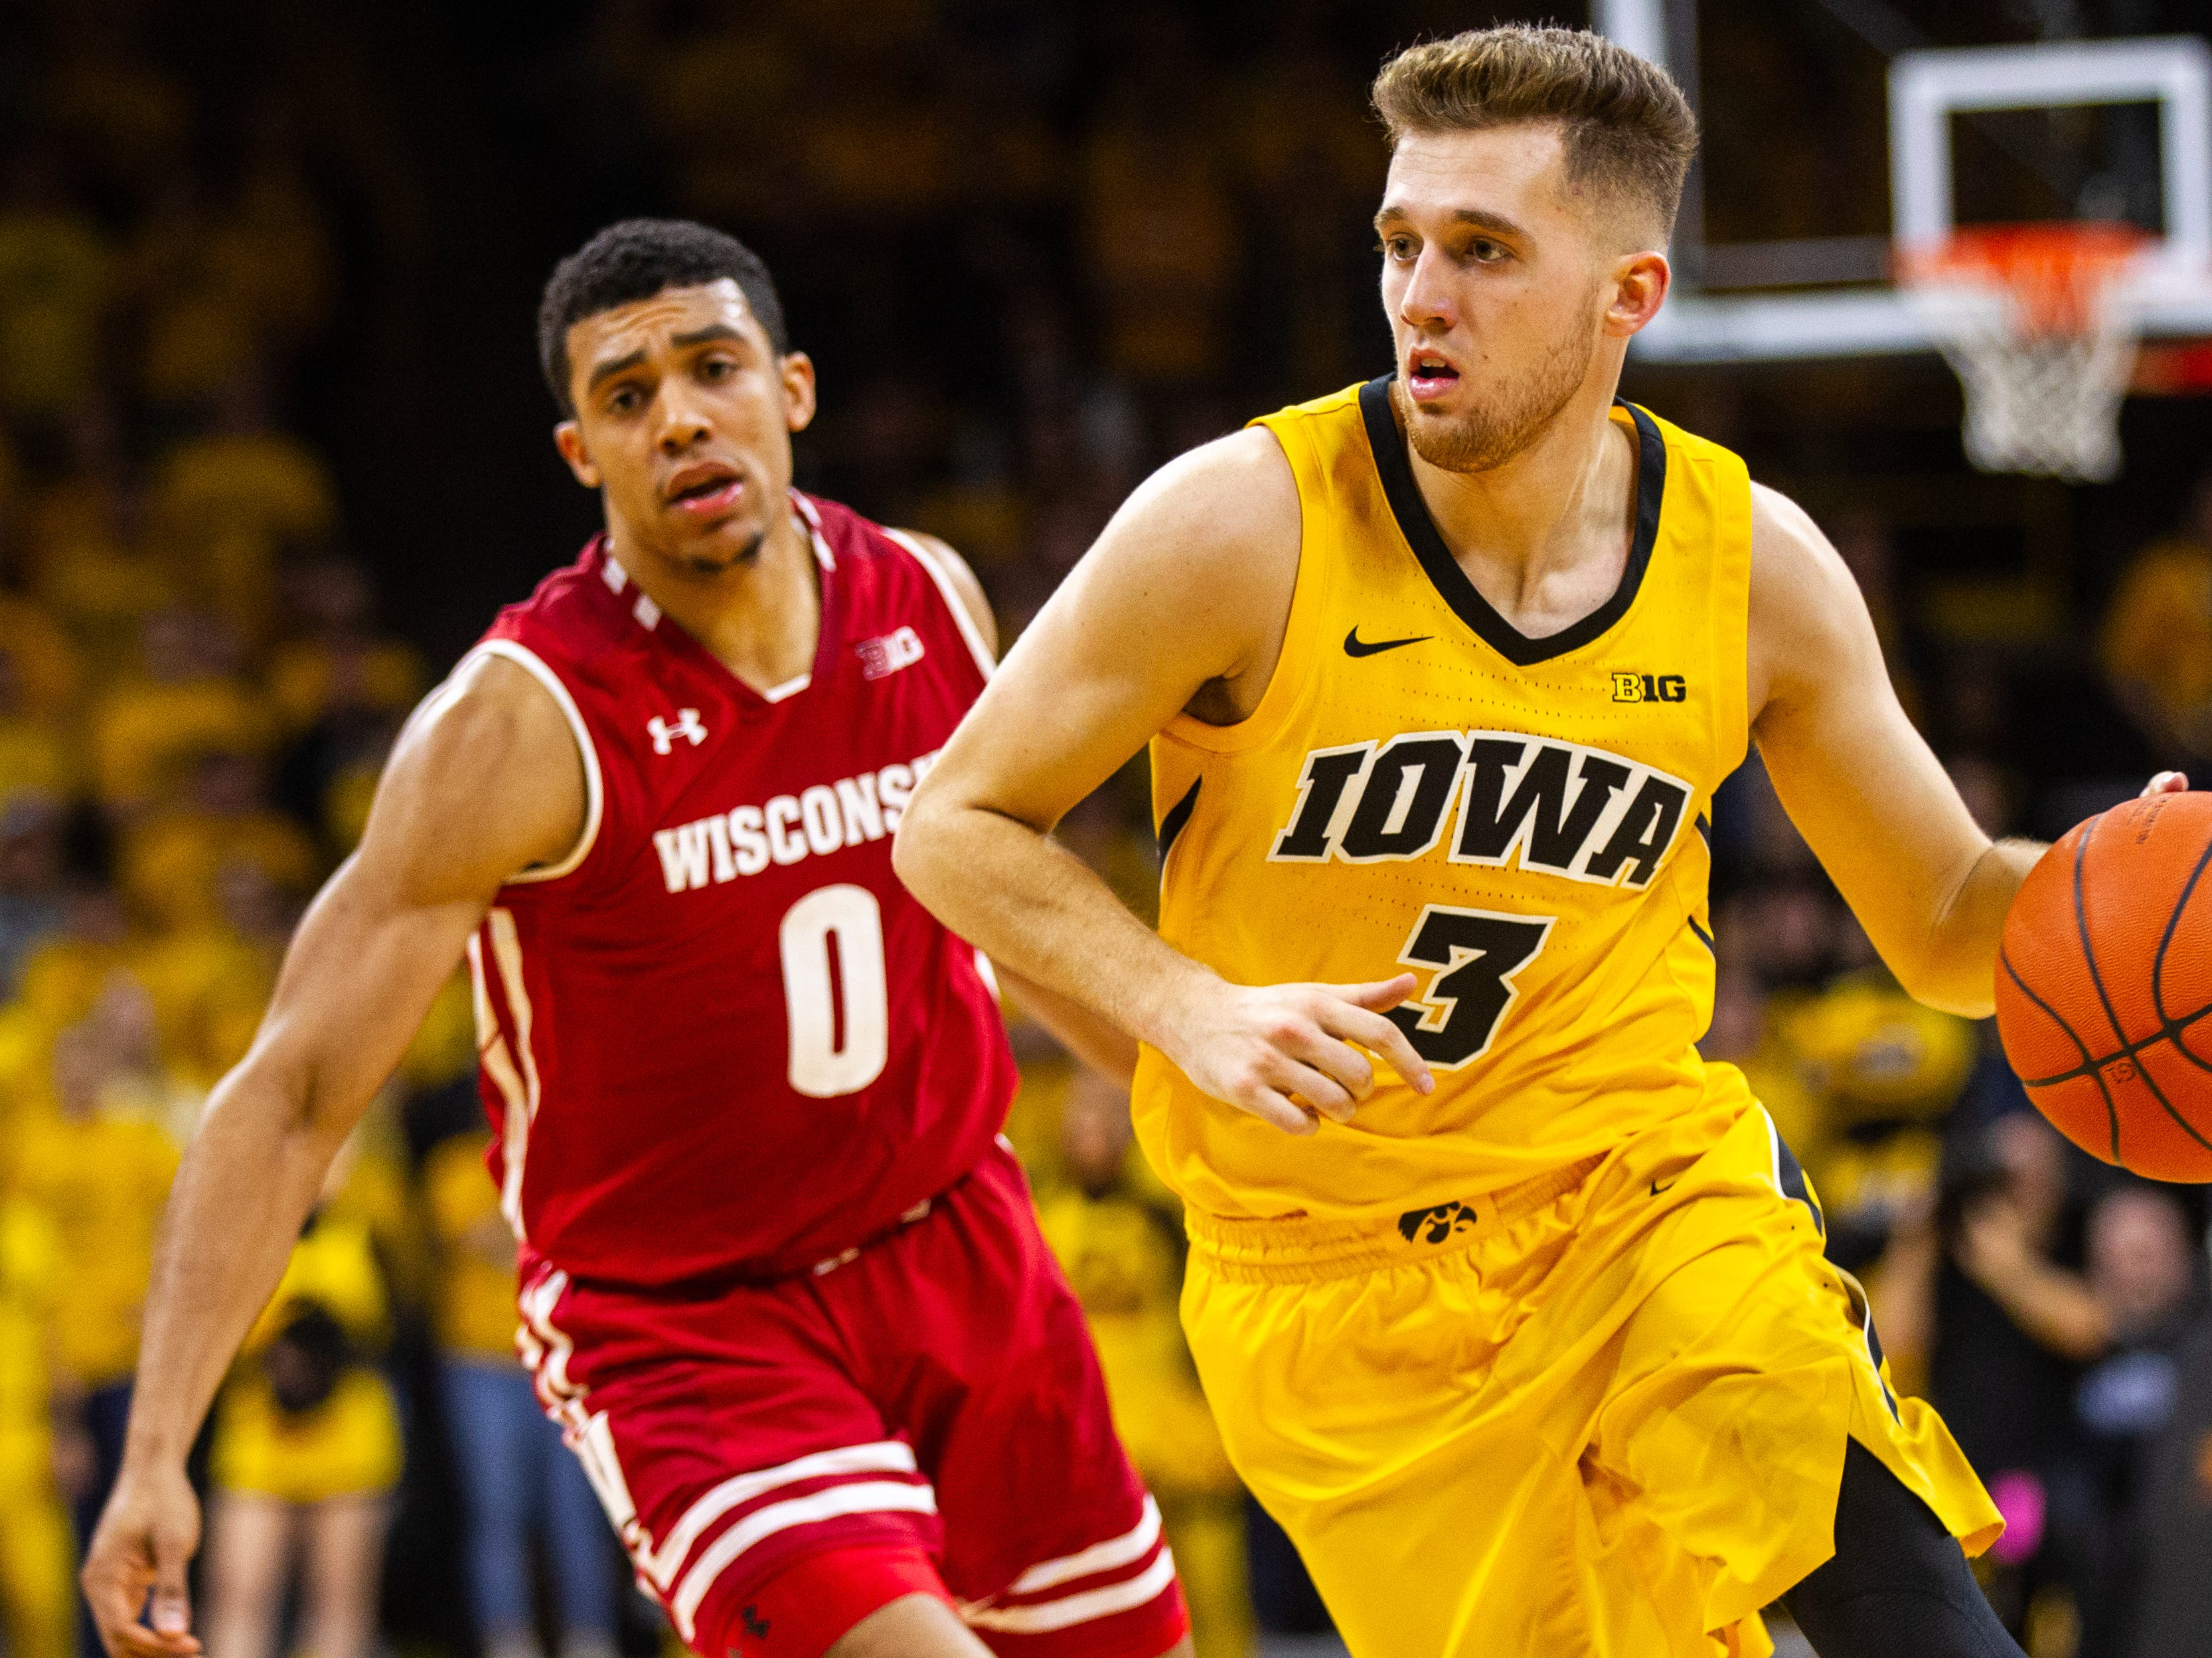 Iowa guard Jordan Bohannon (3) drives to the hoop past Wisconsin's D'Mitrik Trice (0) during a NCAA Big Ten Conference men's basketball game on Friday, Nov. 30, 2018, at Carver-Hawkeye Arena in Iowa City.